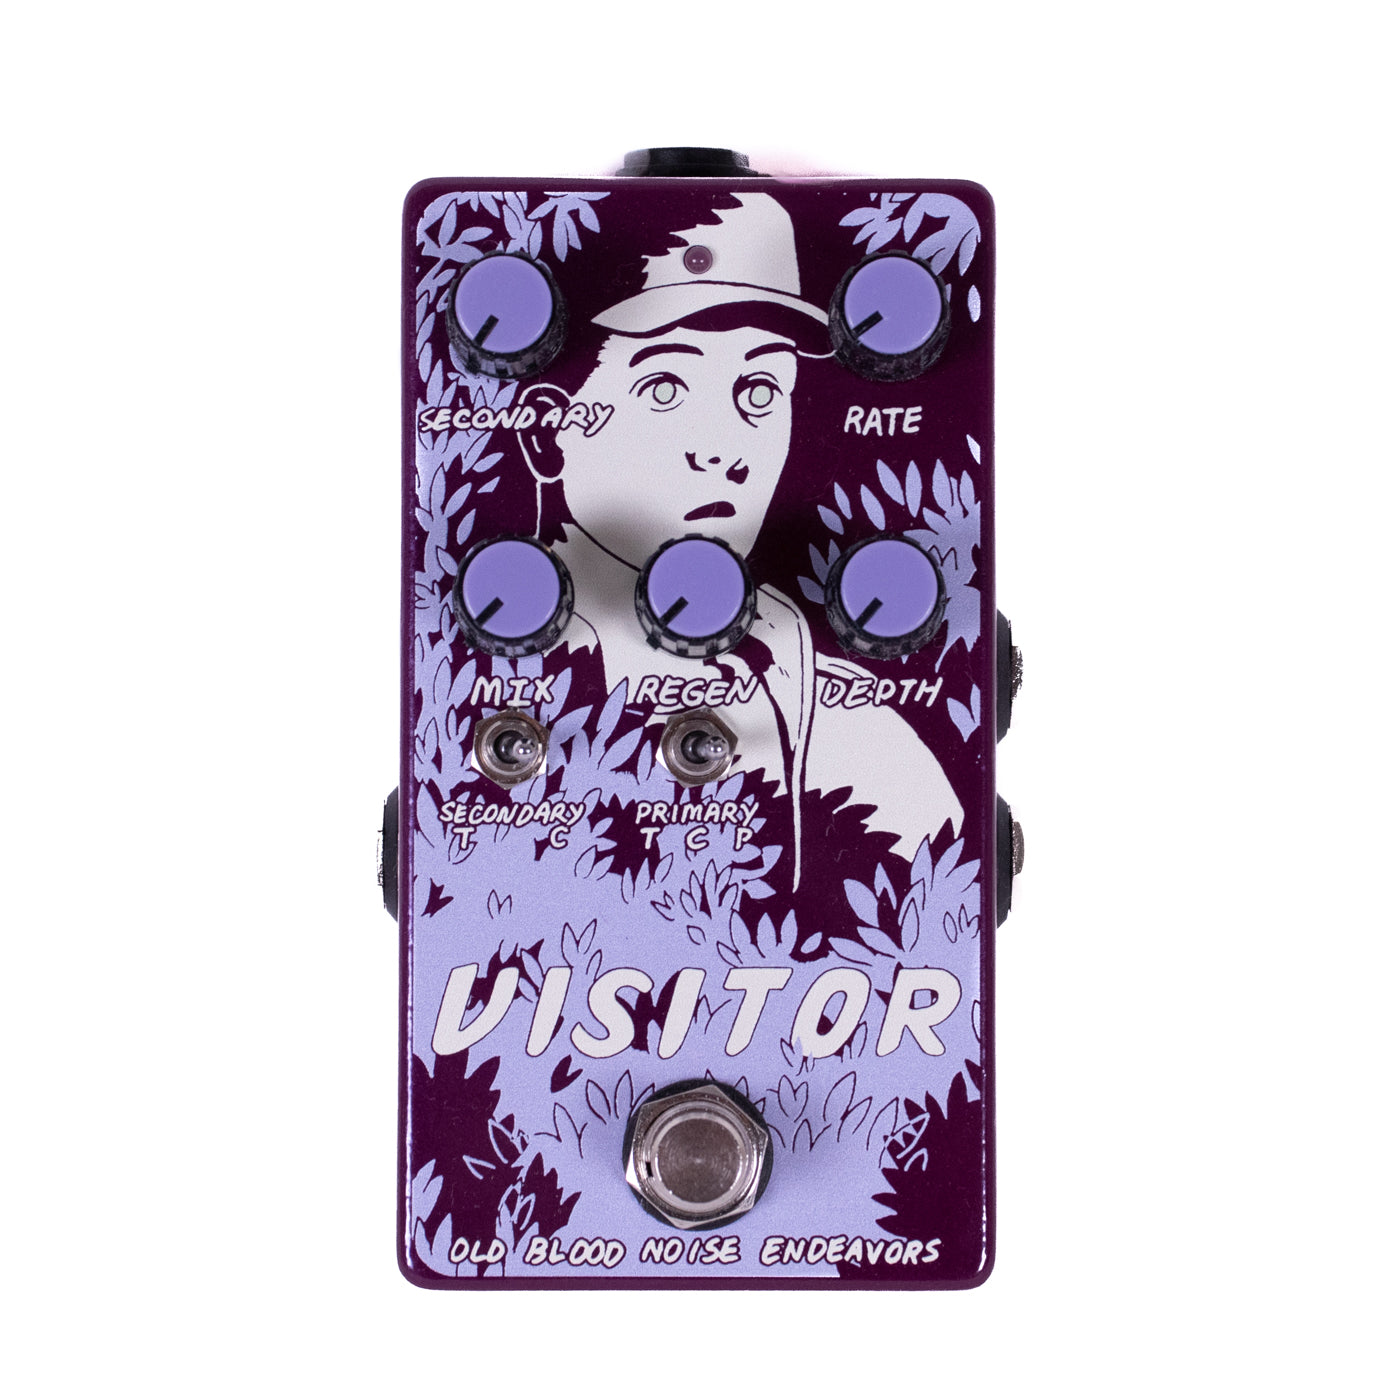 New Old Blood Noise Endeavors Visitor Parallel Multi-Modulator image 3